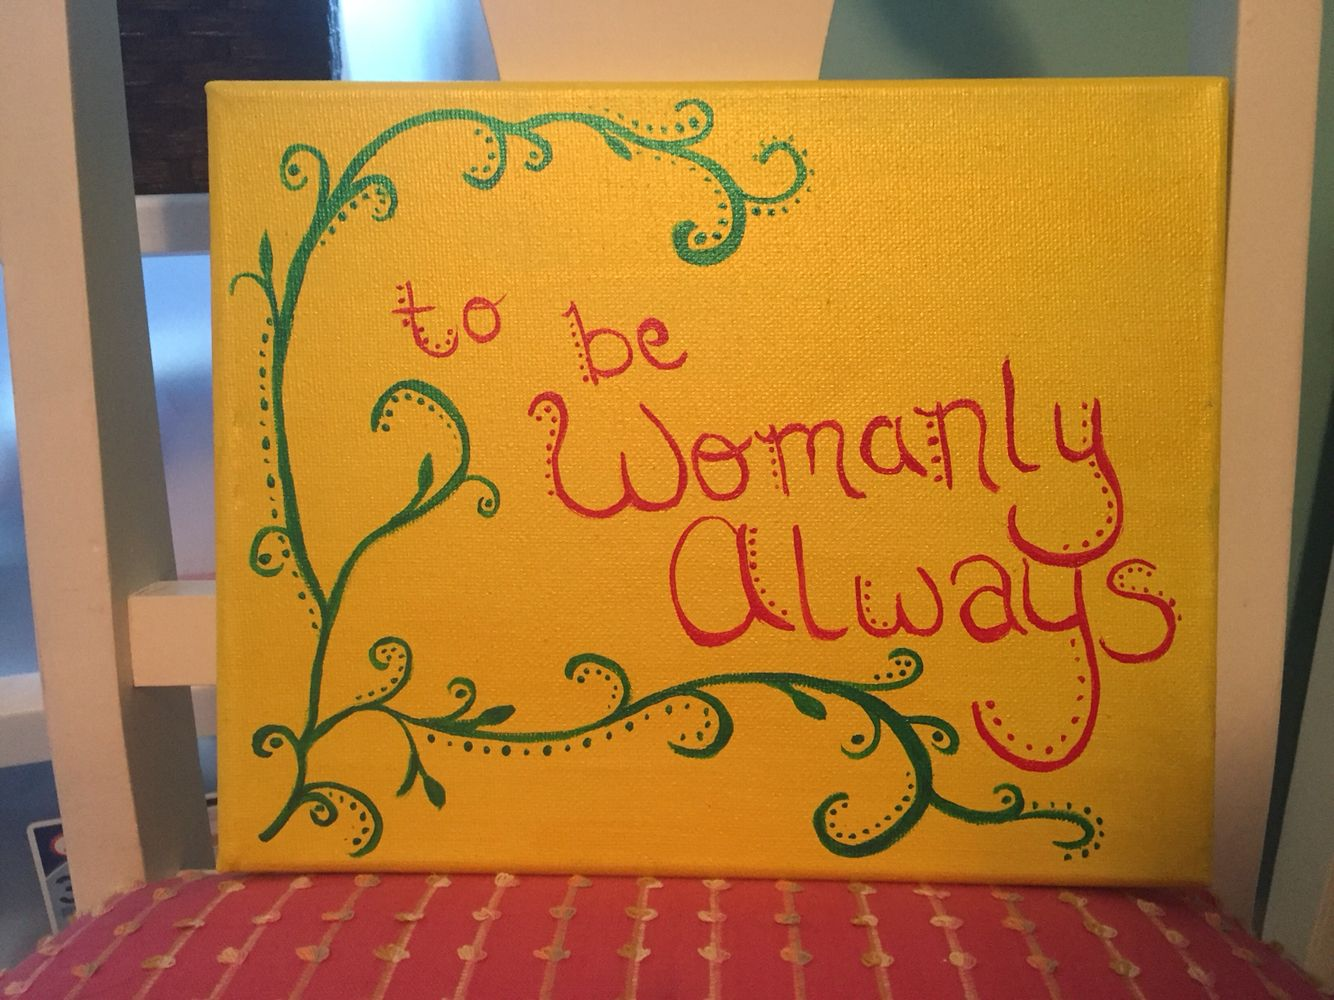 To be womanly always